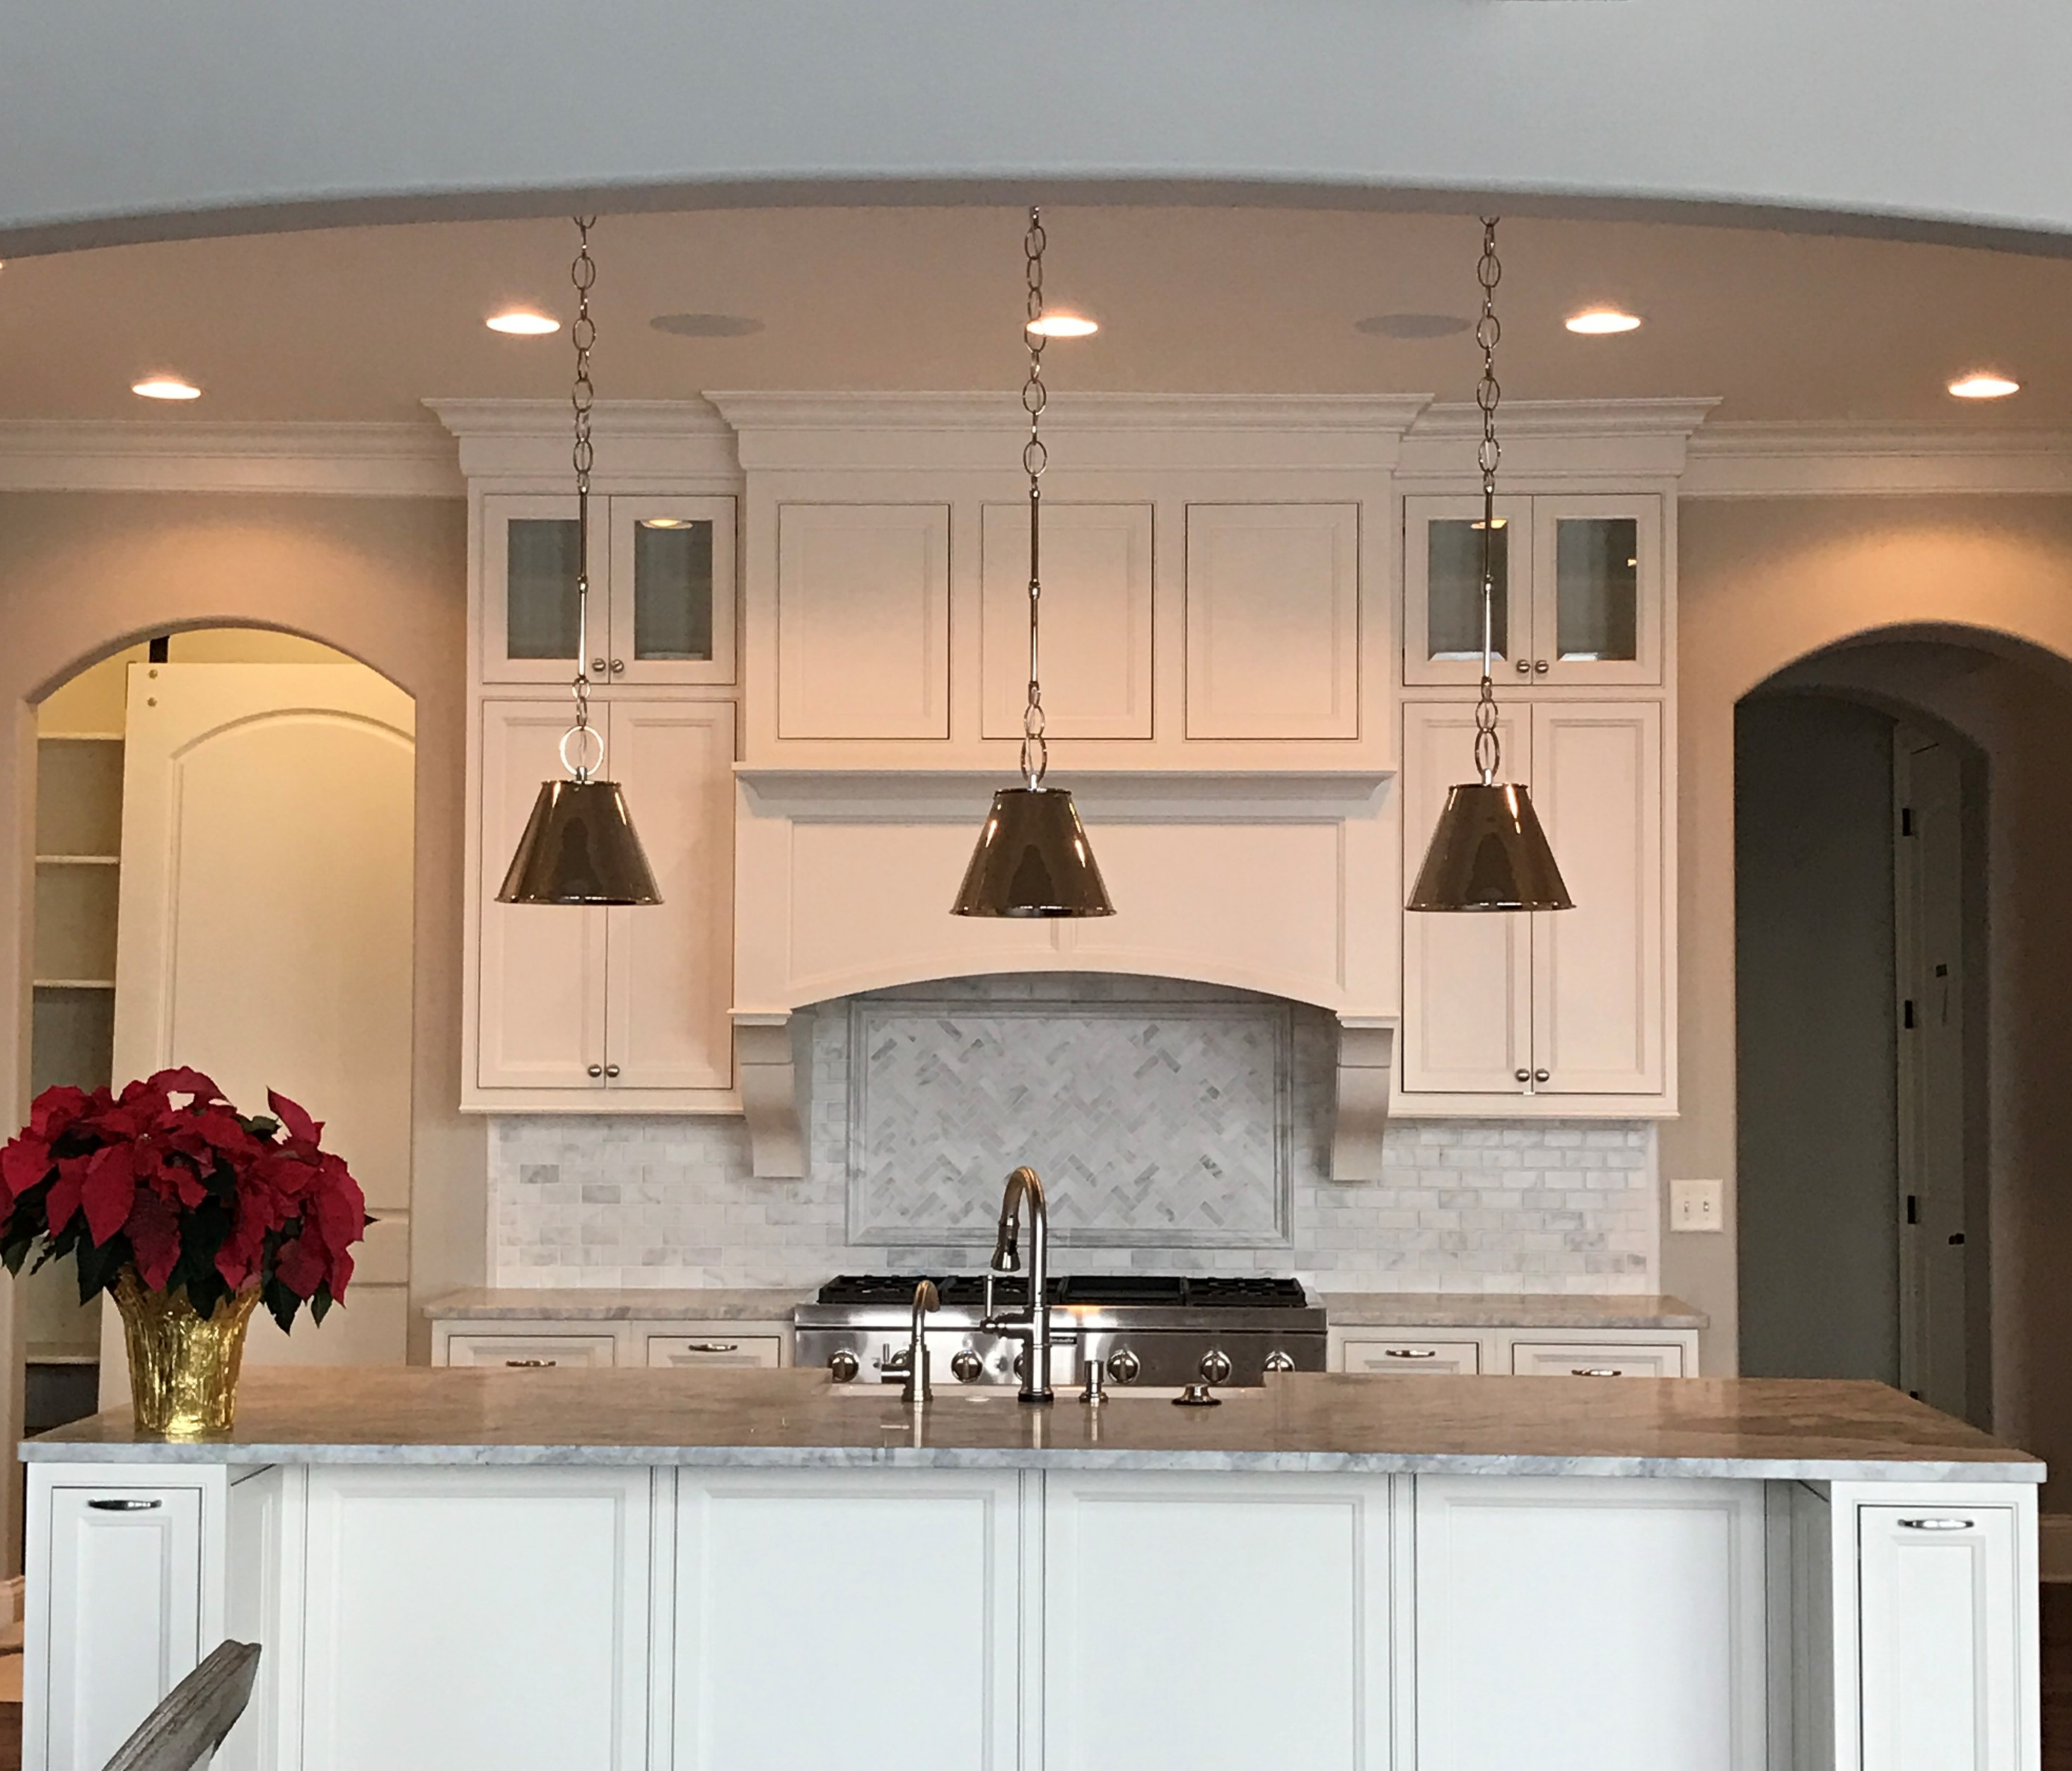 Inset Cabinets Vs Overlay What Is The Difference And Which Is Best For You Cabinet Inspirations Ideas